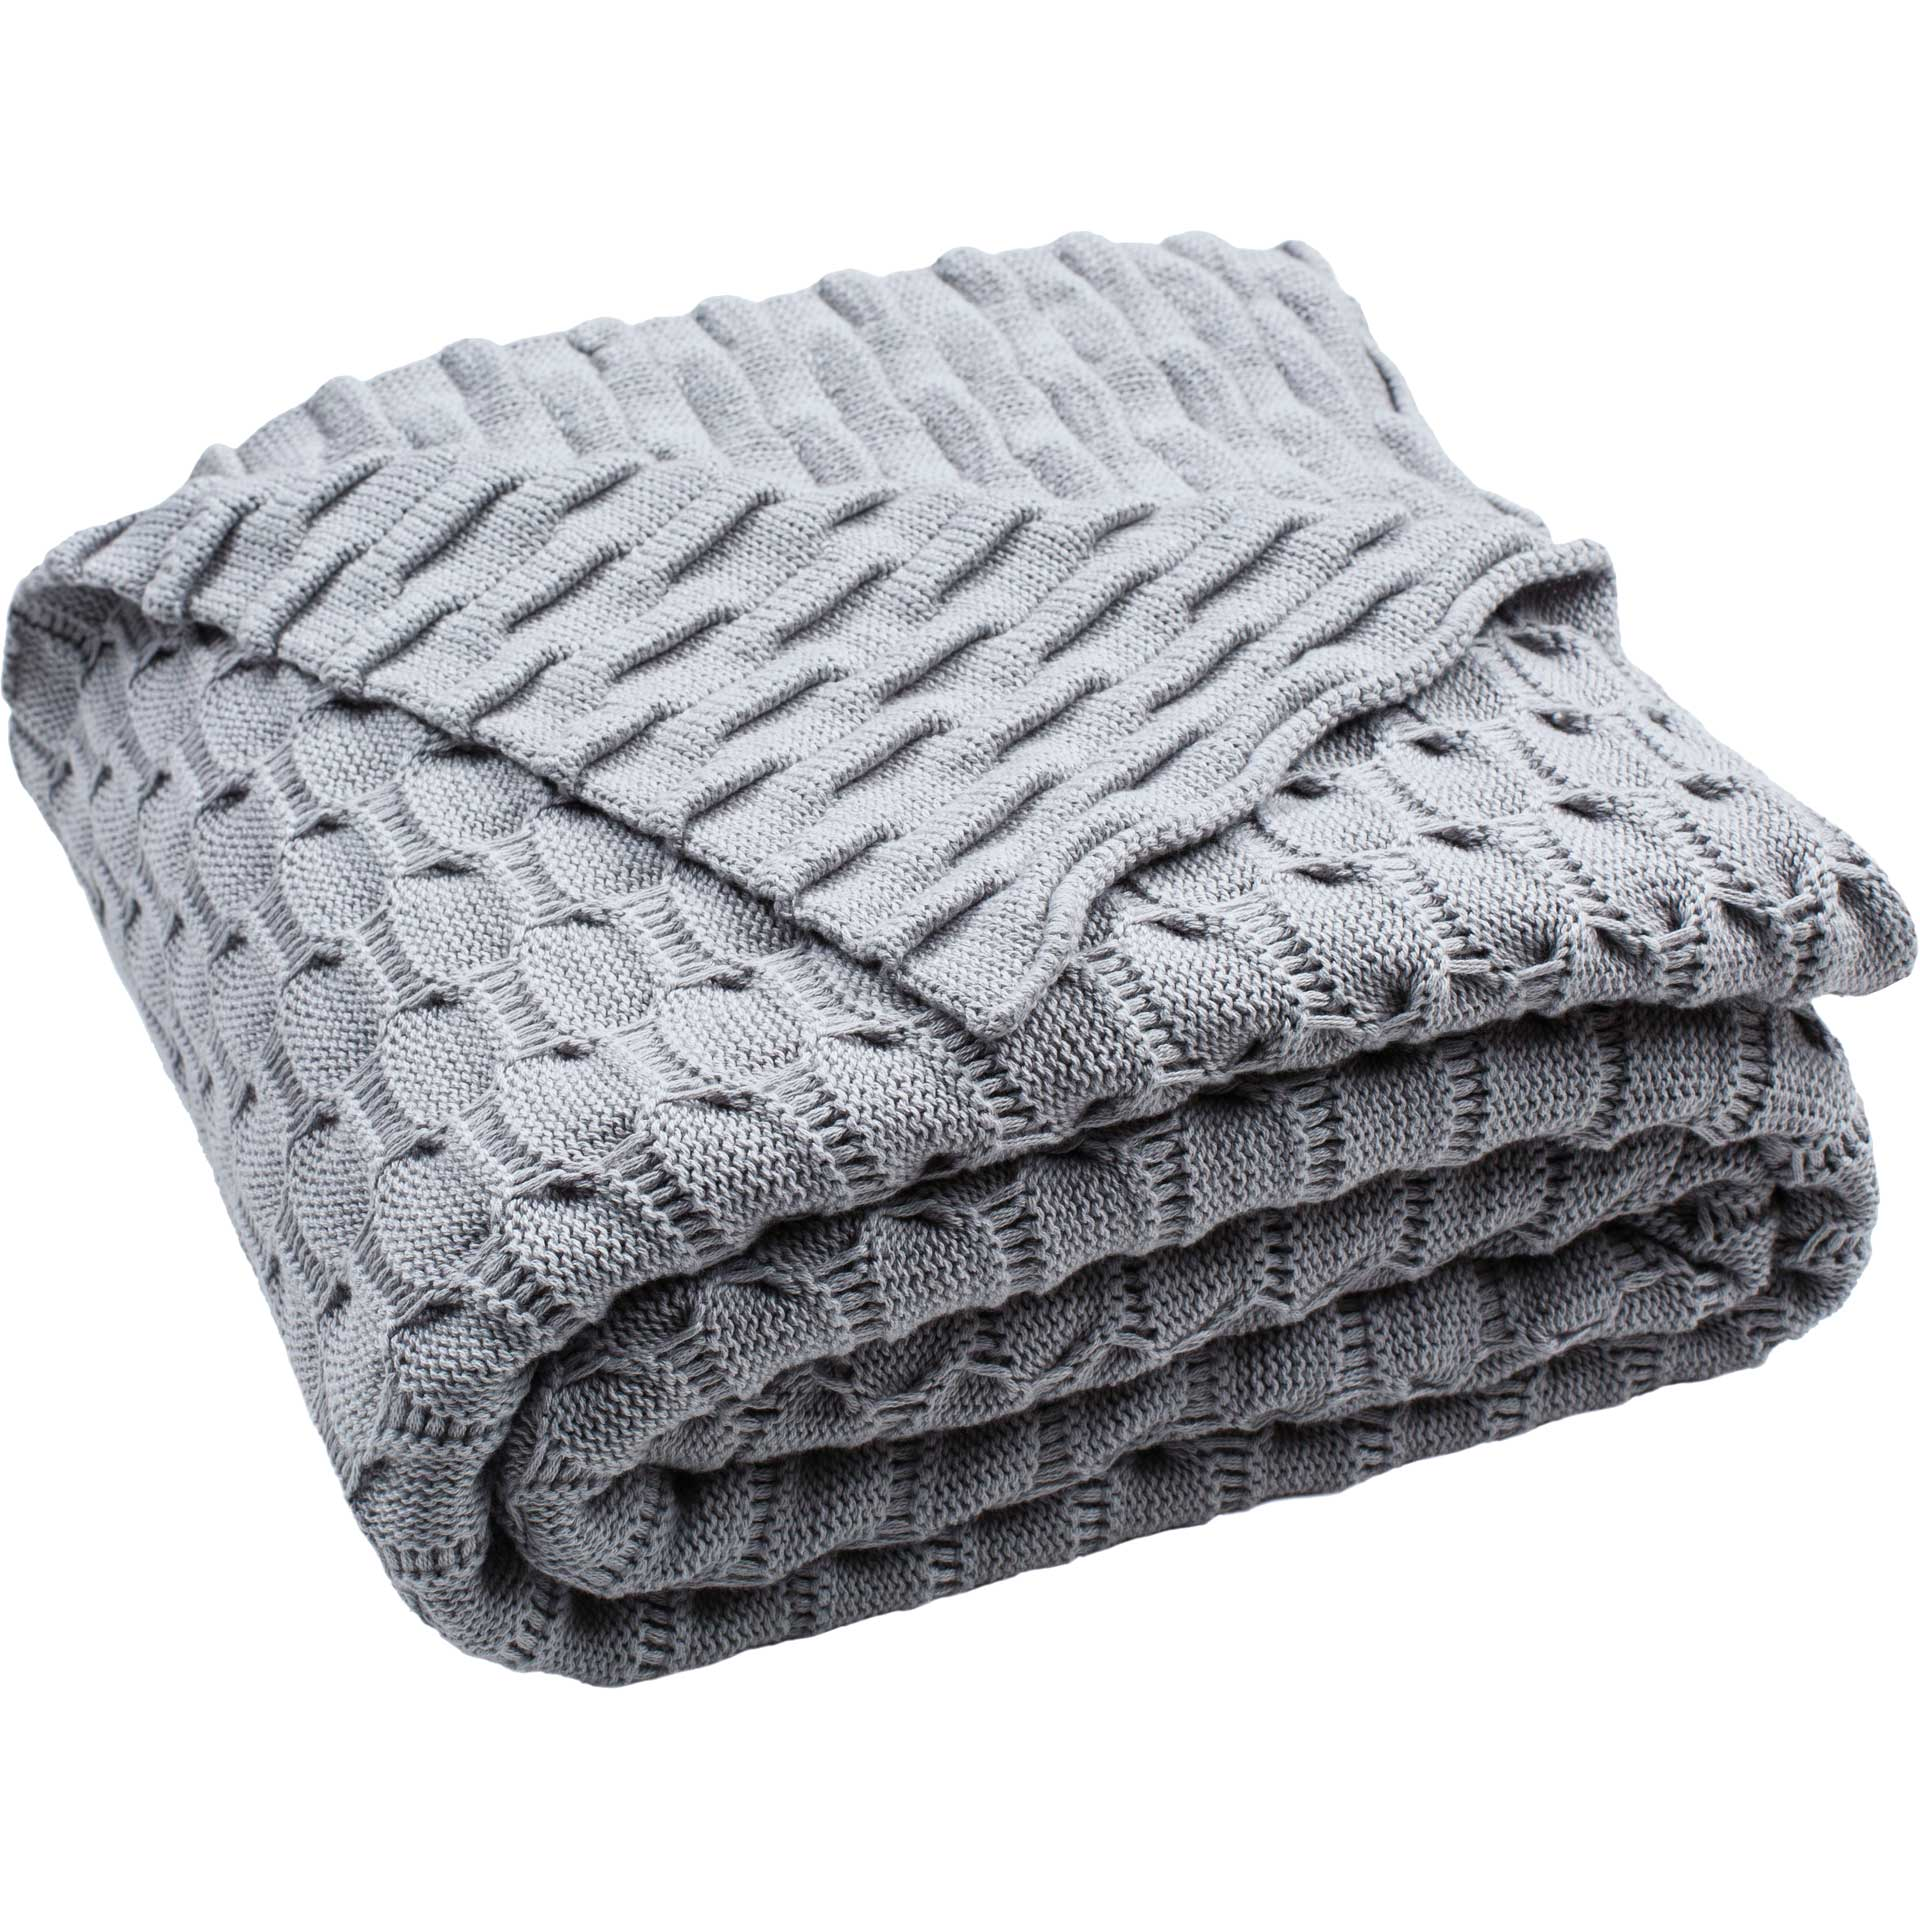 Novara Knit Throw Light Gray